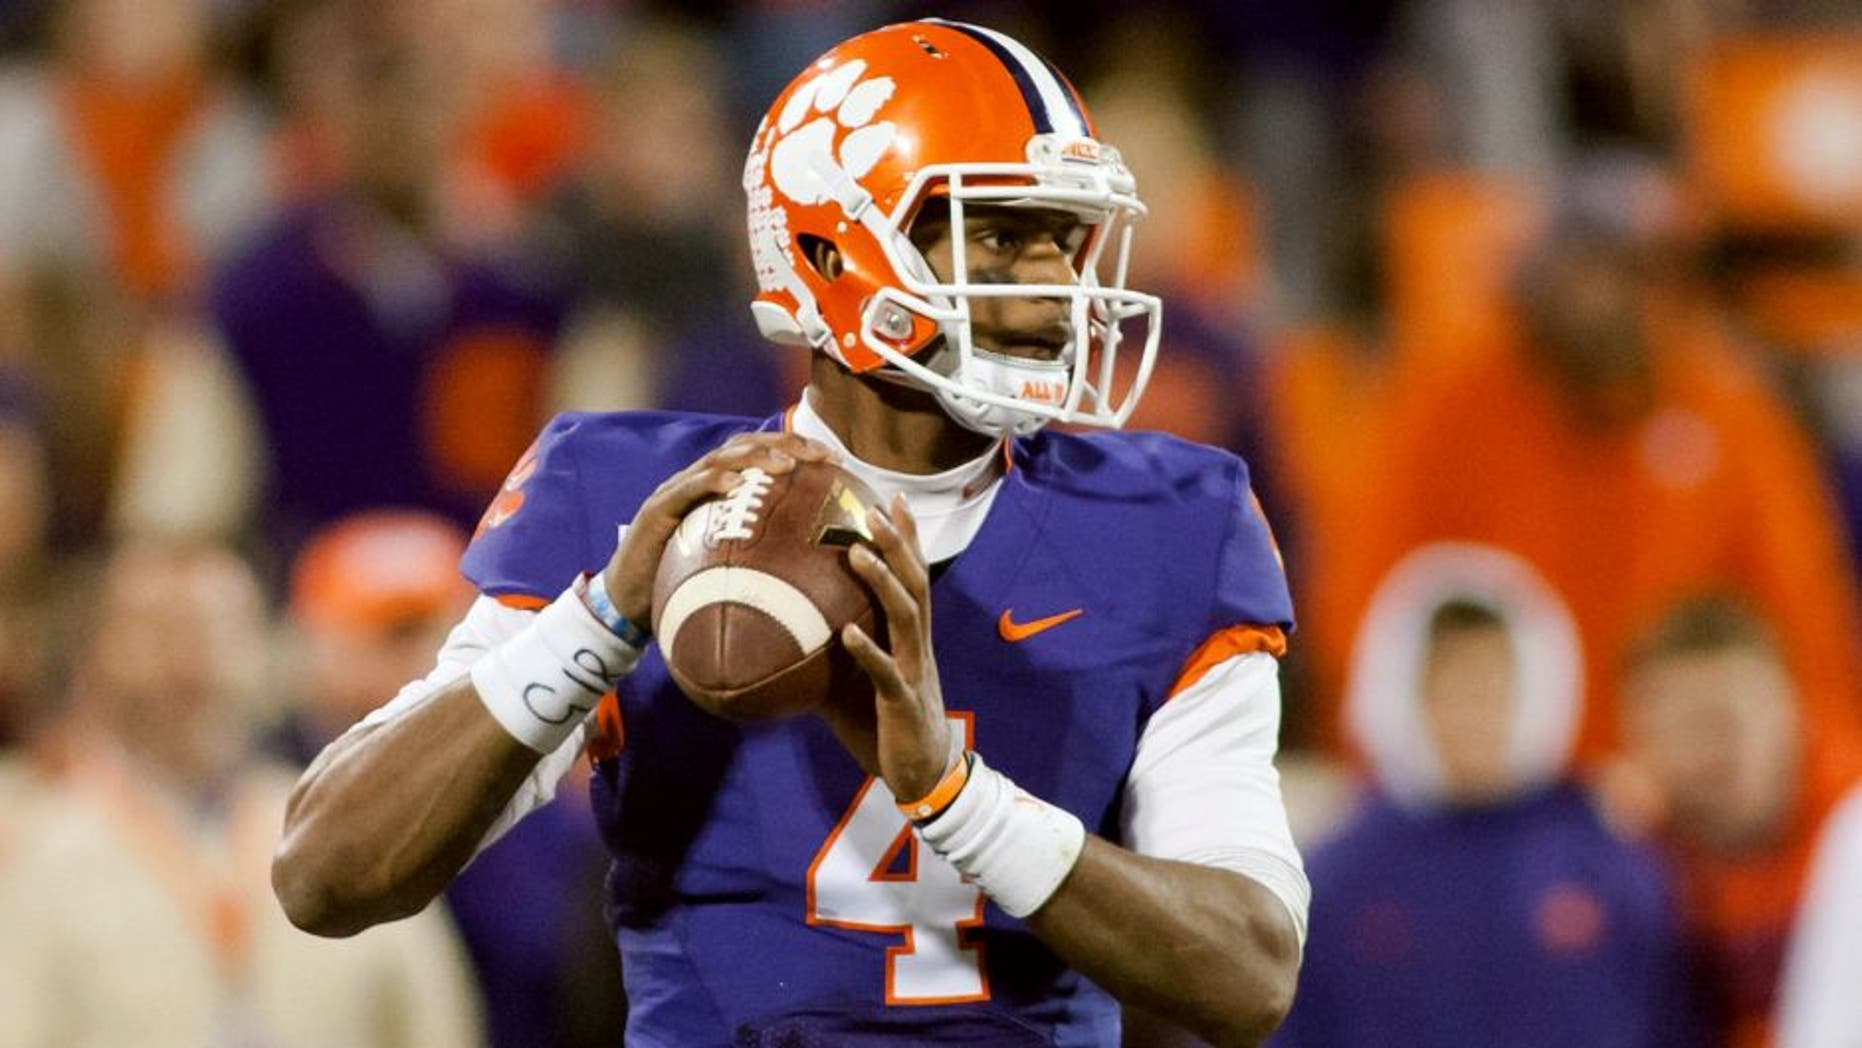 Nov 21, 2015; Clemson, SC, USA; Clemson Tigers quarterback Deshaun Watson (4) looks to pass the ball during the third quarter against the Wake Forest Demon Deacons at Clemson Memorial Stadium. Clemson defeated Wake Forest 33-13. Mandatory Credit: Jeremy Brevard-USA TODAY Sports